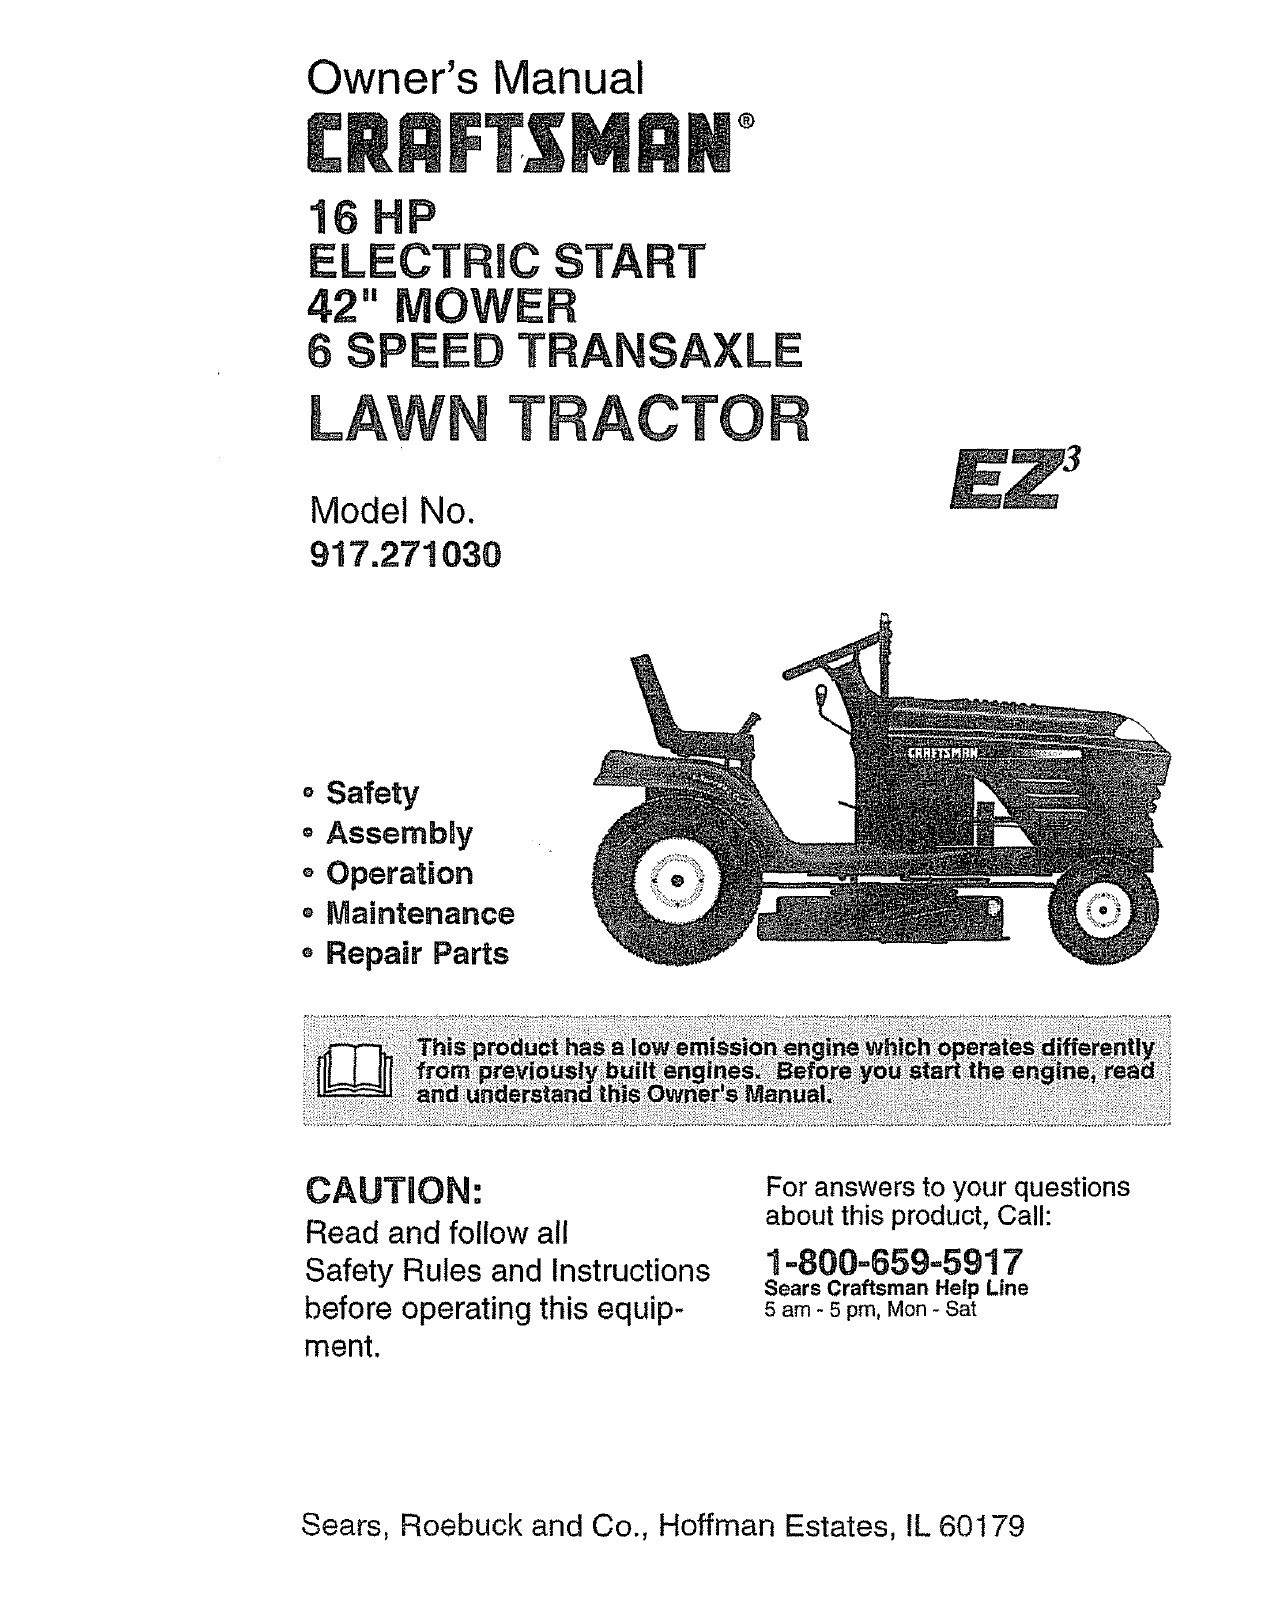 craftsman lawn mower model 917 wiring diagram Download-Craftsman Riding Lawn Mower Parts In Lt2000 Wiring Diagram 9 14-b